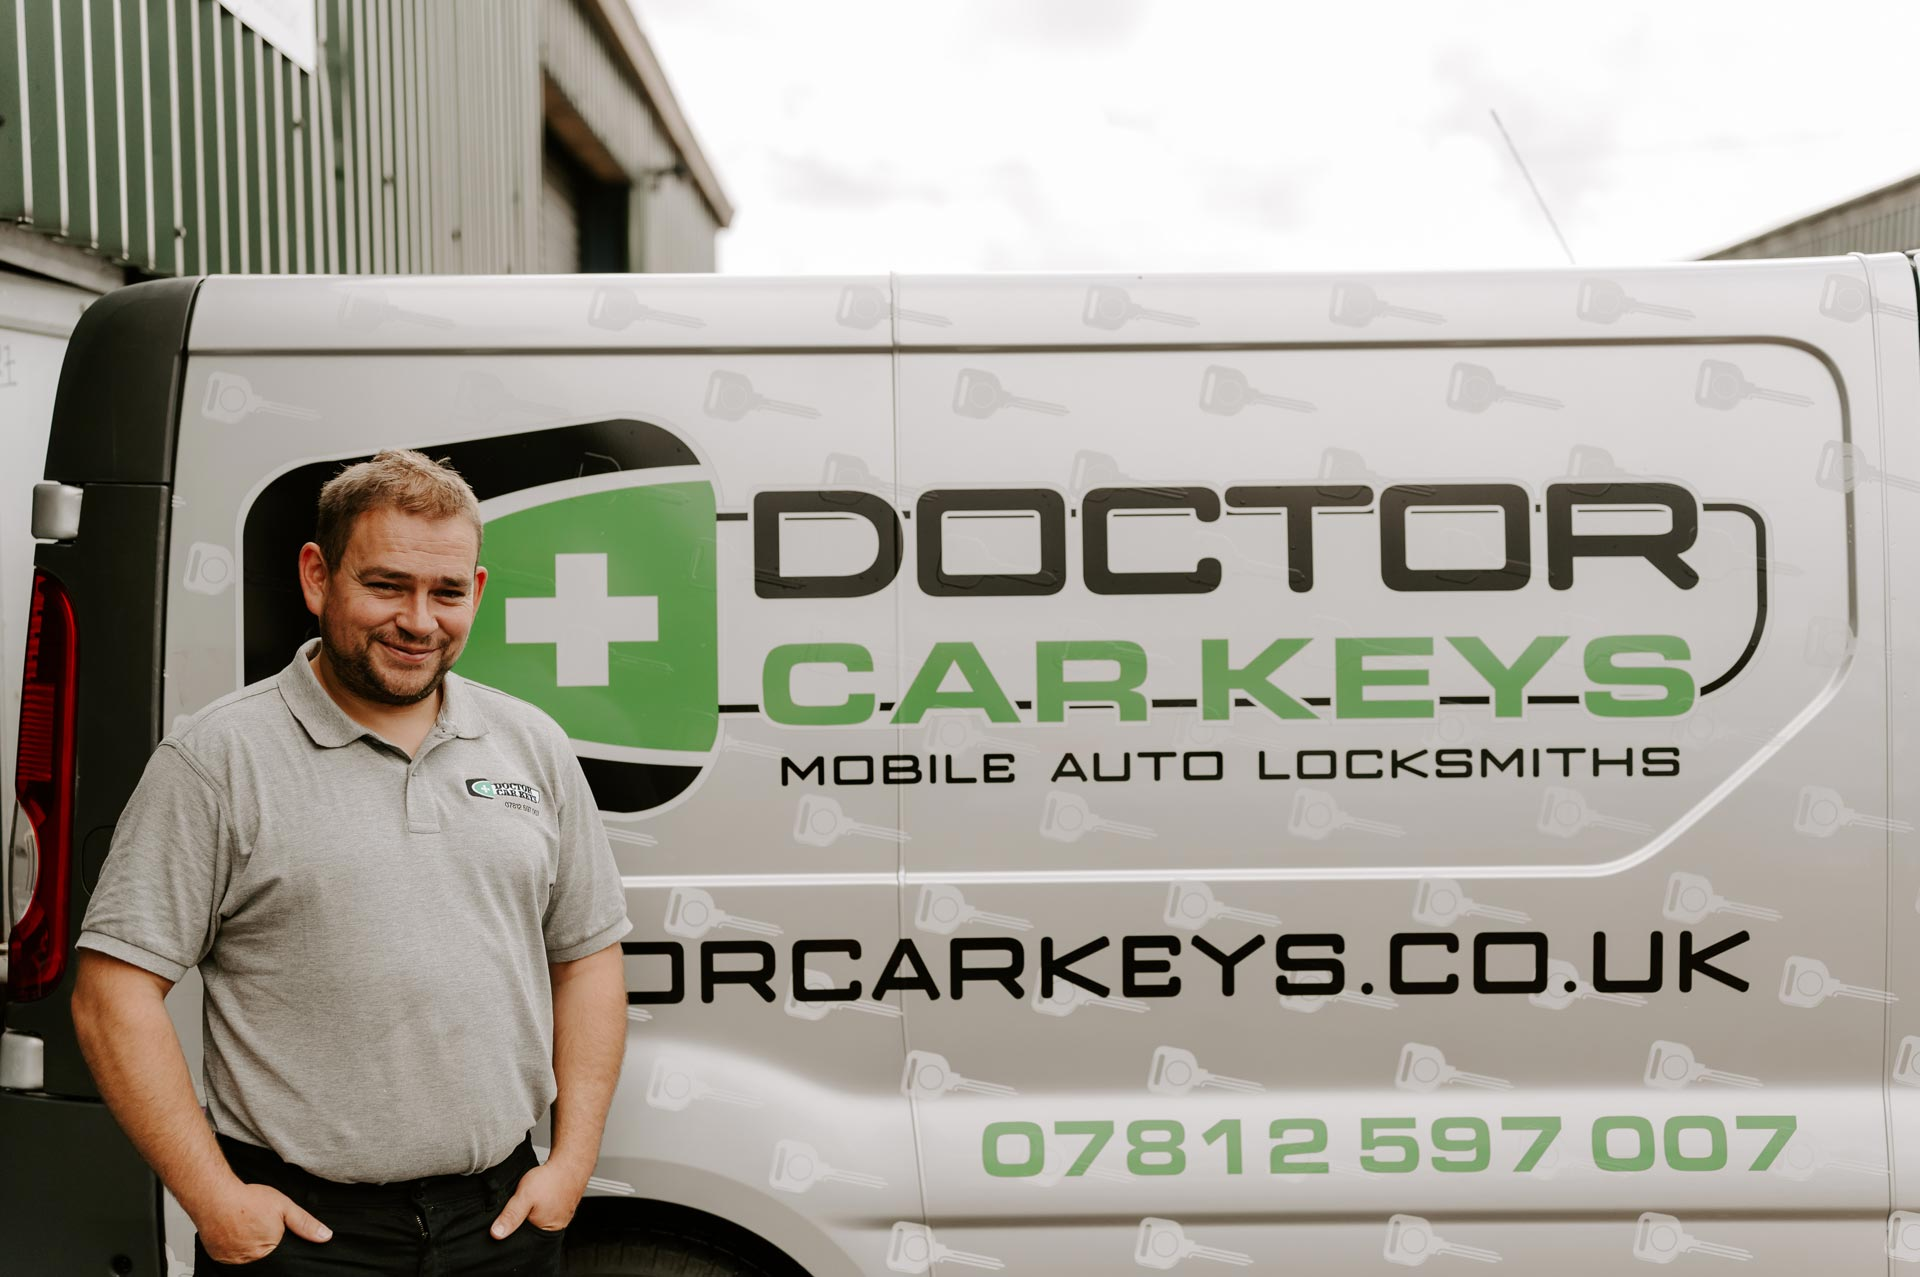 Auto Locksmiths in Yateley